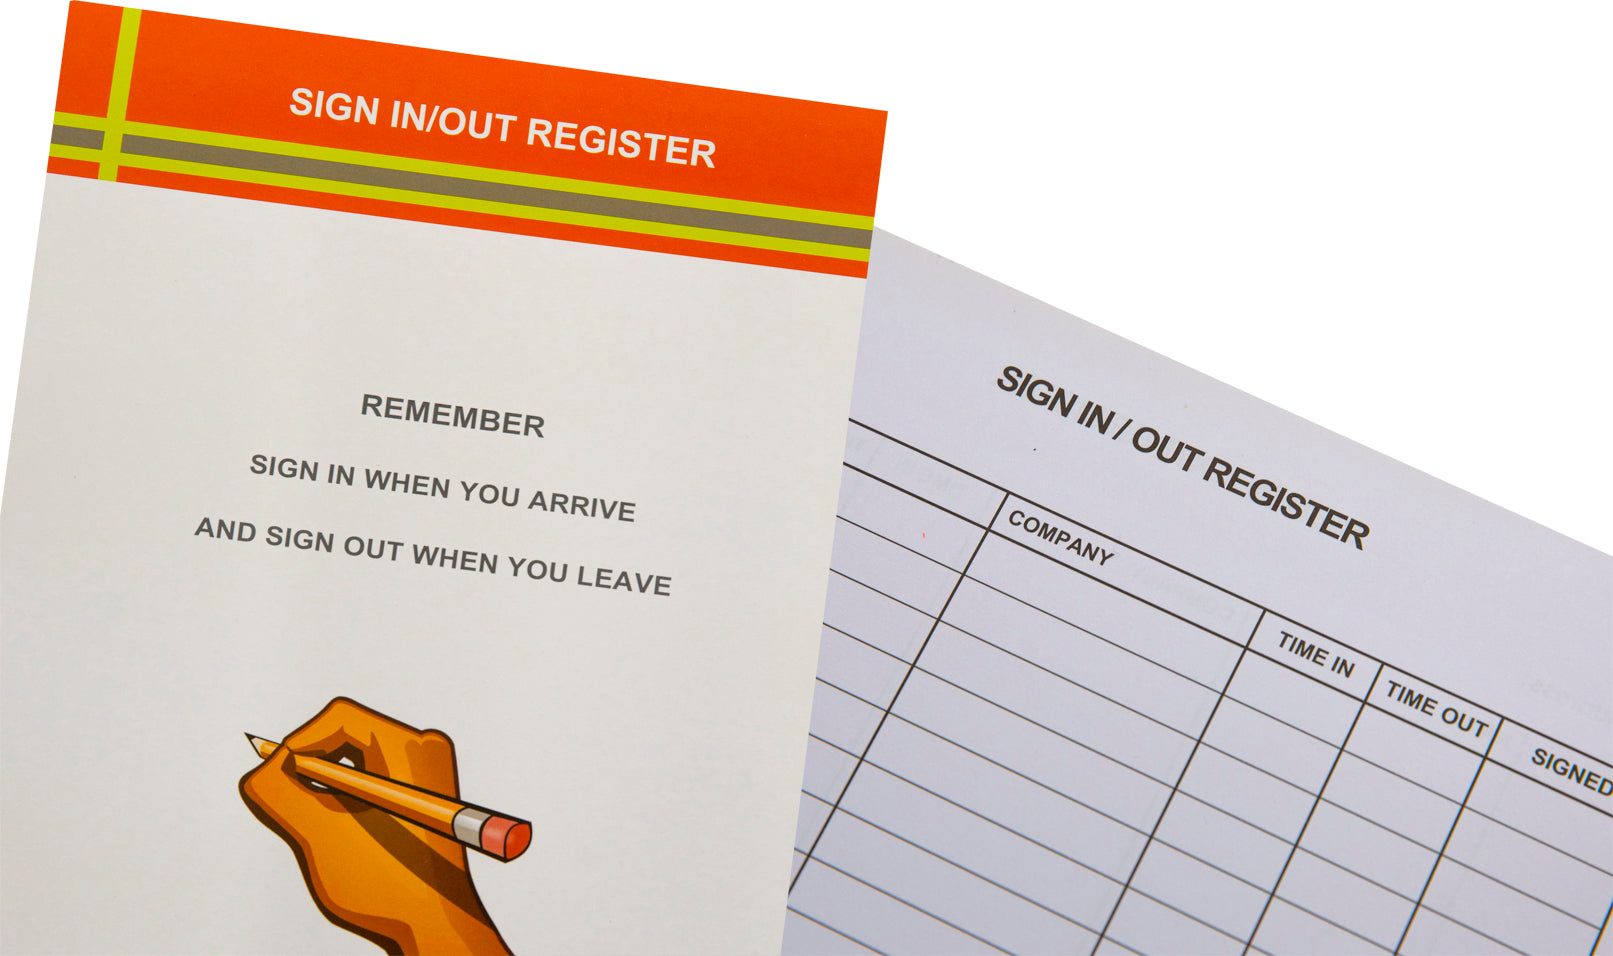 Sign In/Out Register - Pad